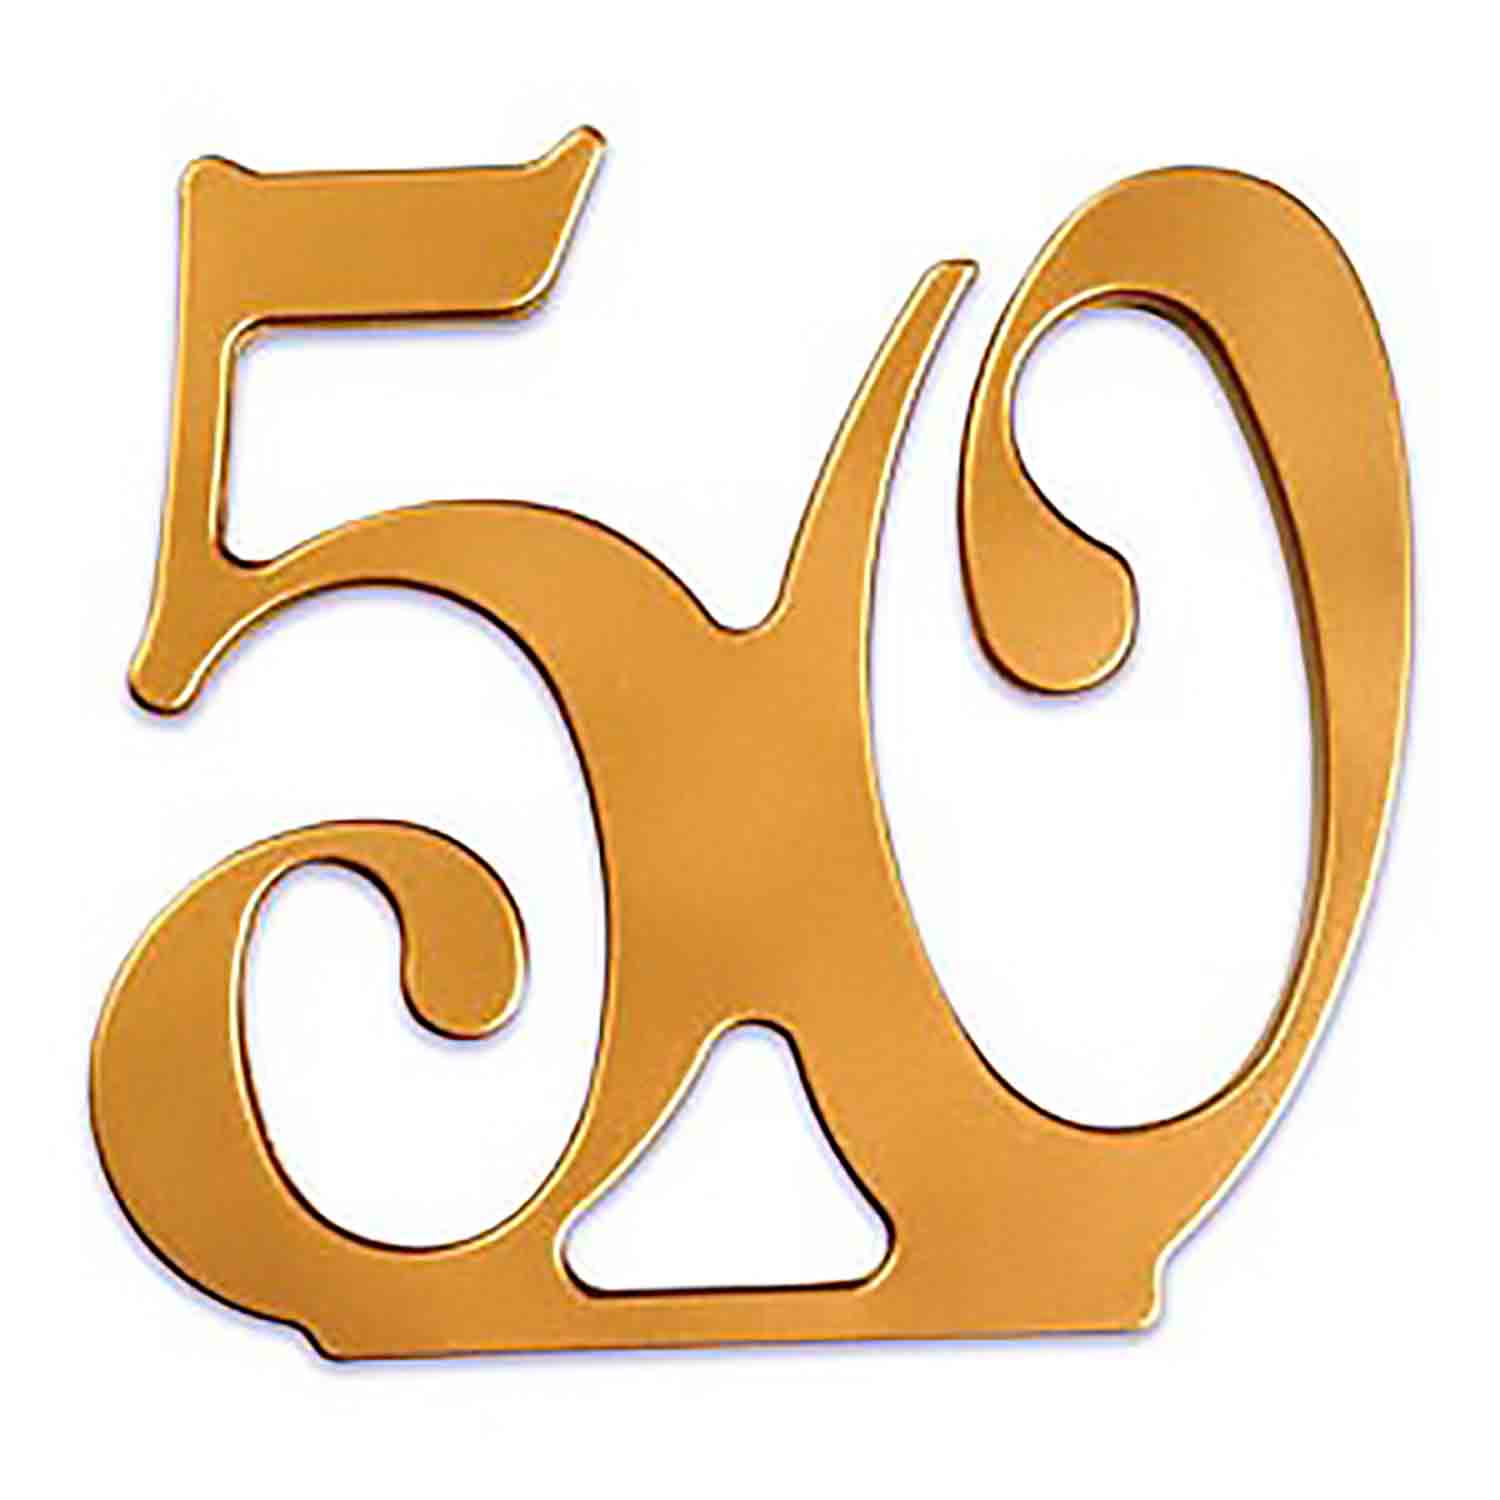 50th Anniversary Cake Topper